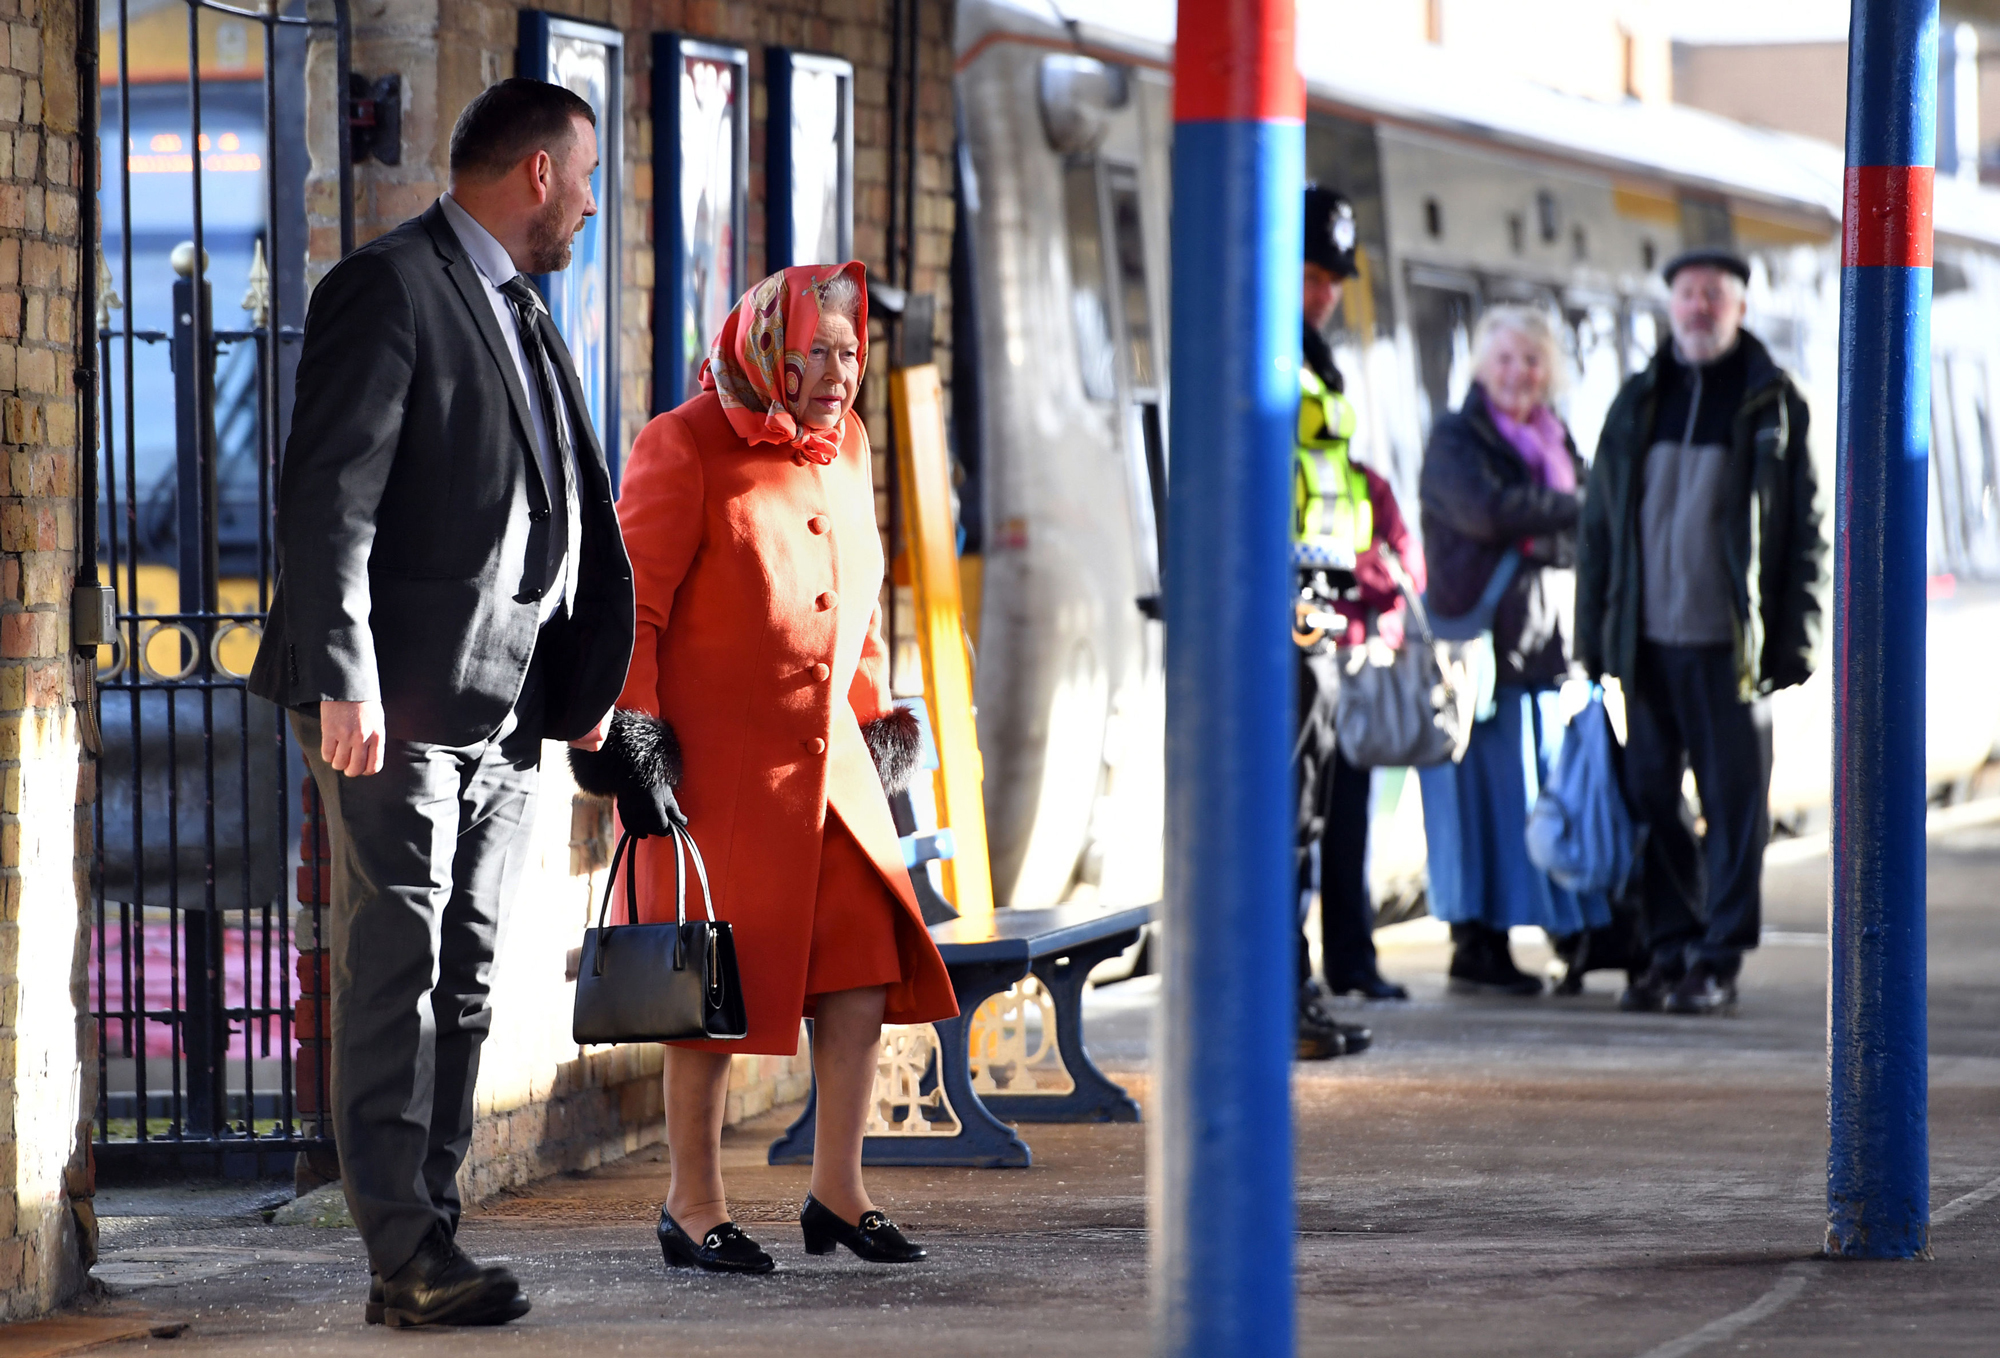 Queen Elizabeth Shocked Onlookers by Casually Hanging Out on a Train Platform